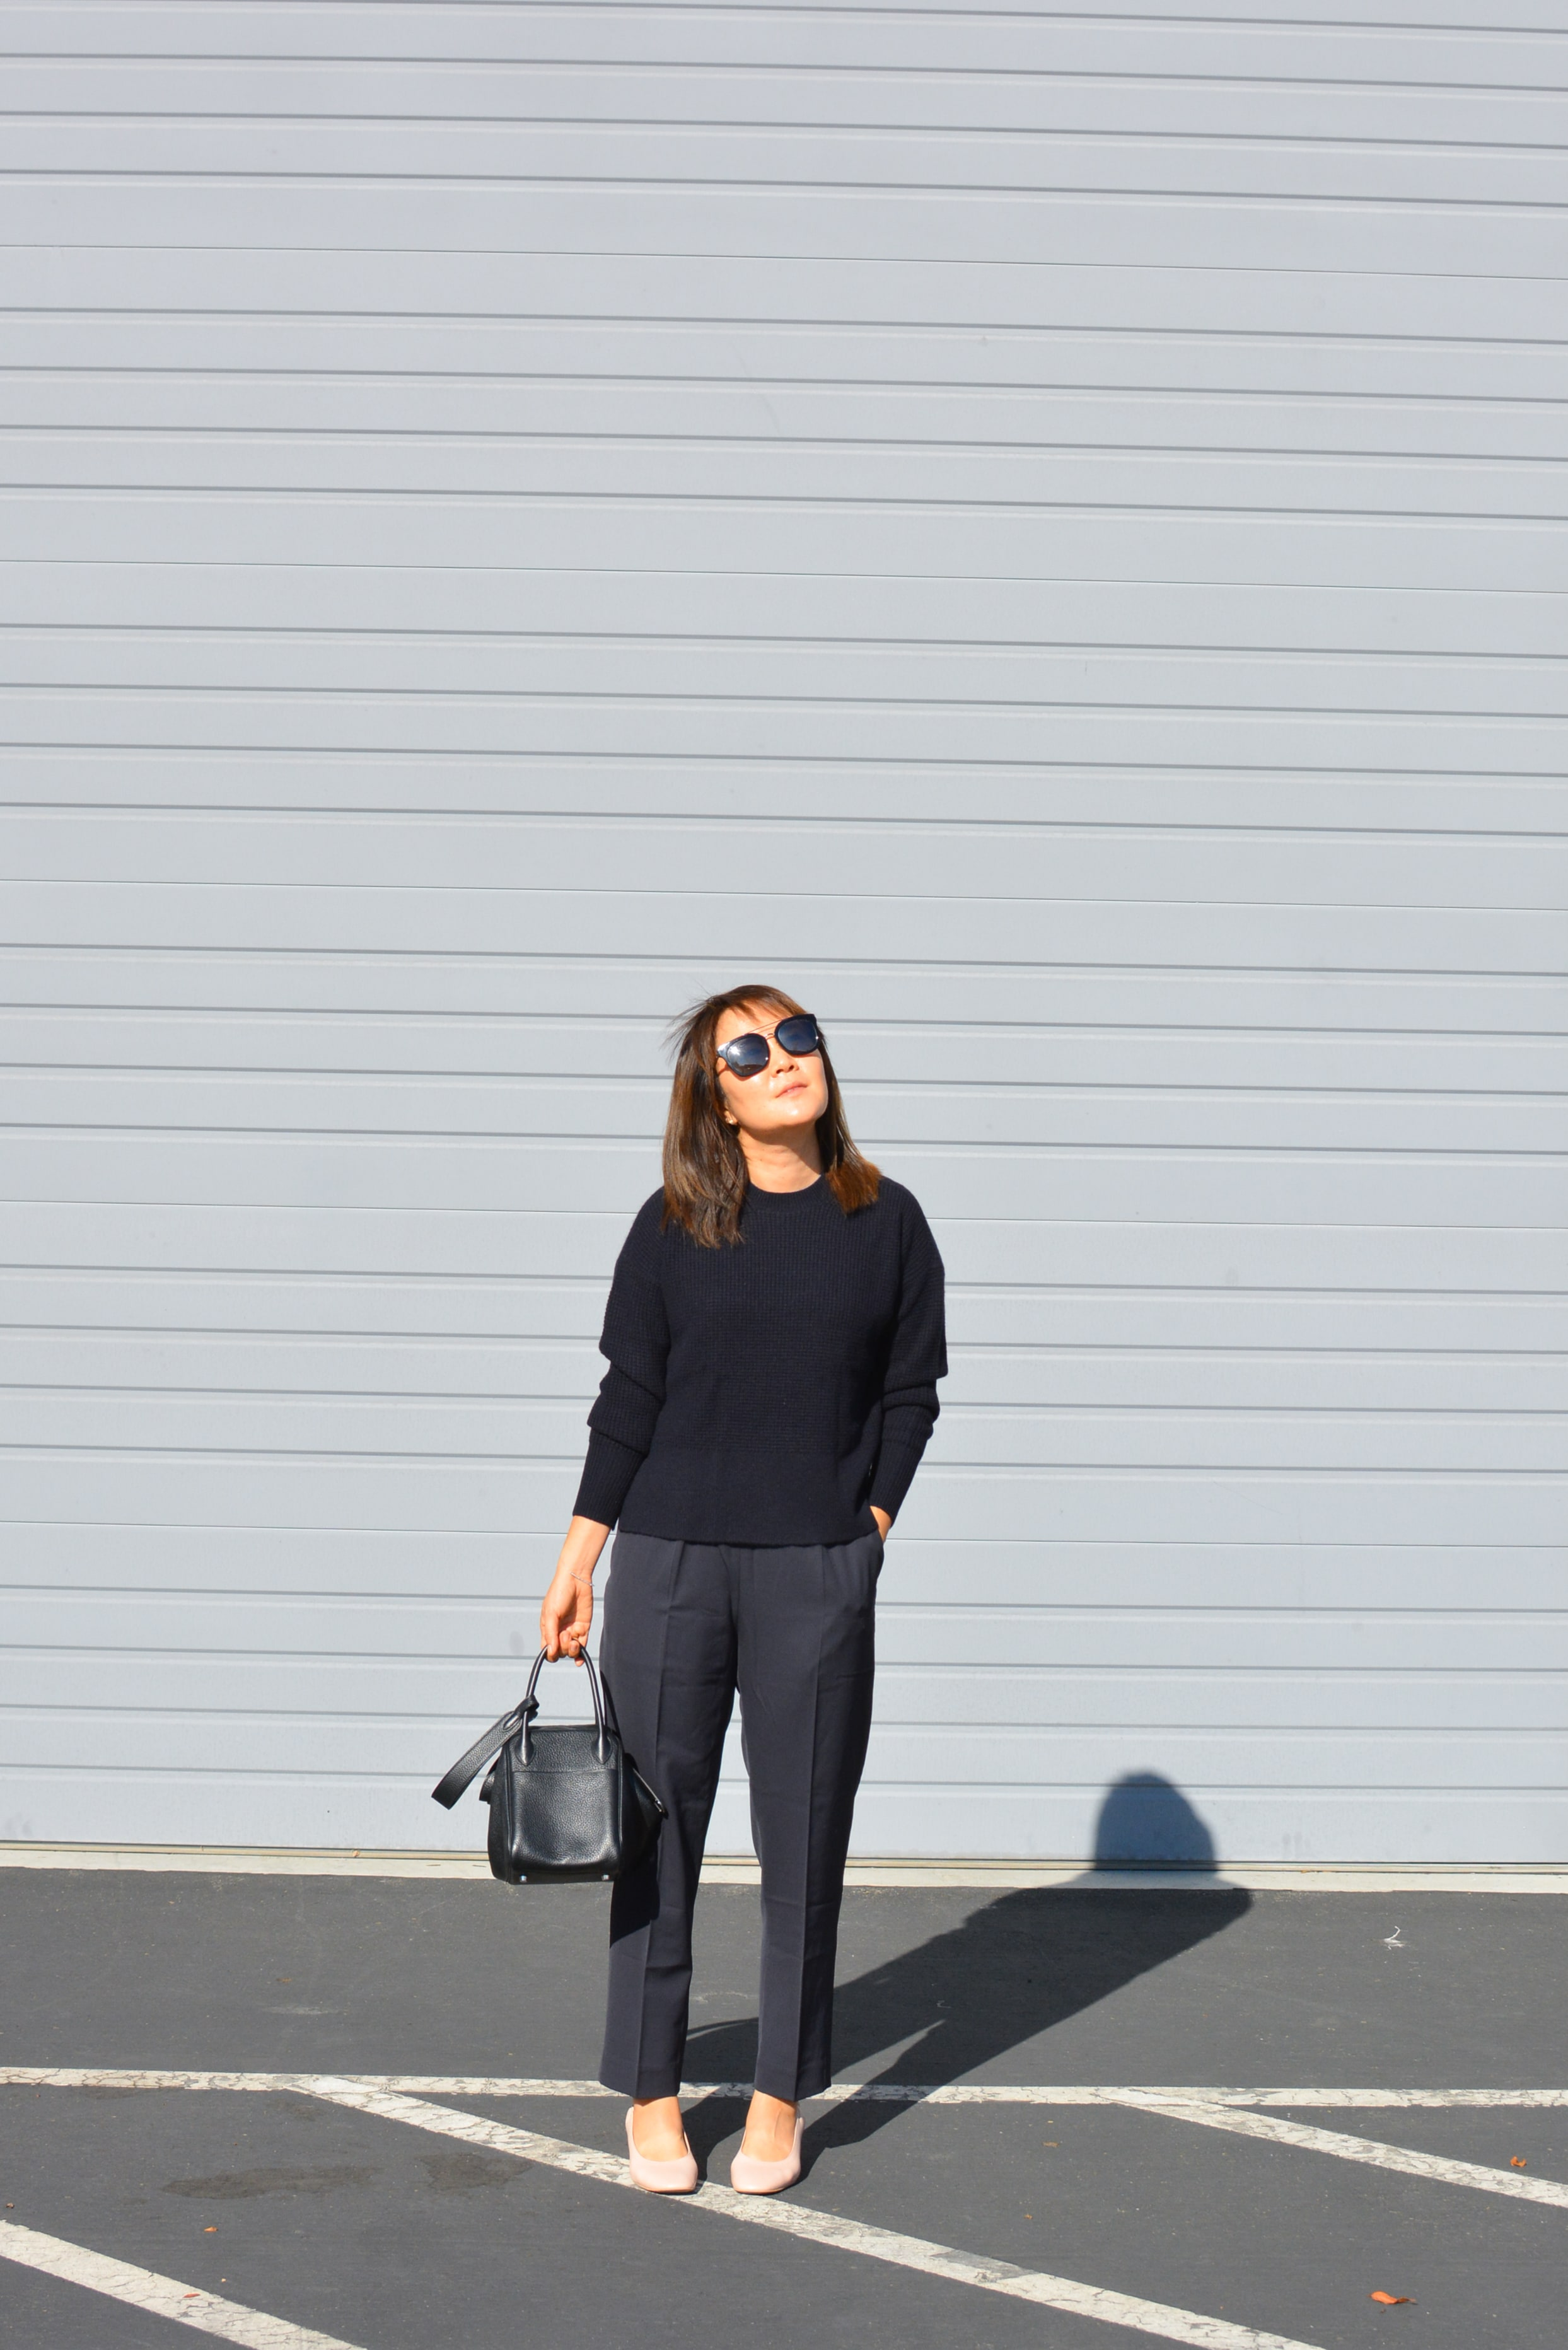 Everlane Review The Waffle Knit Cashmere Crew Sweater (2 of 3)-min.jpg